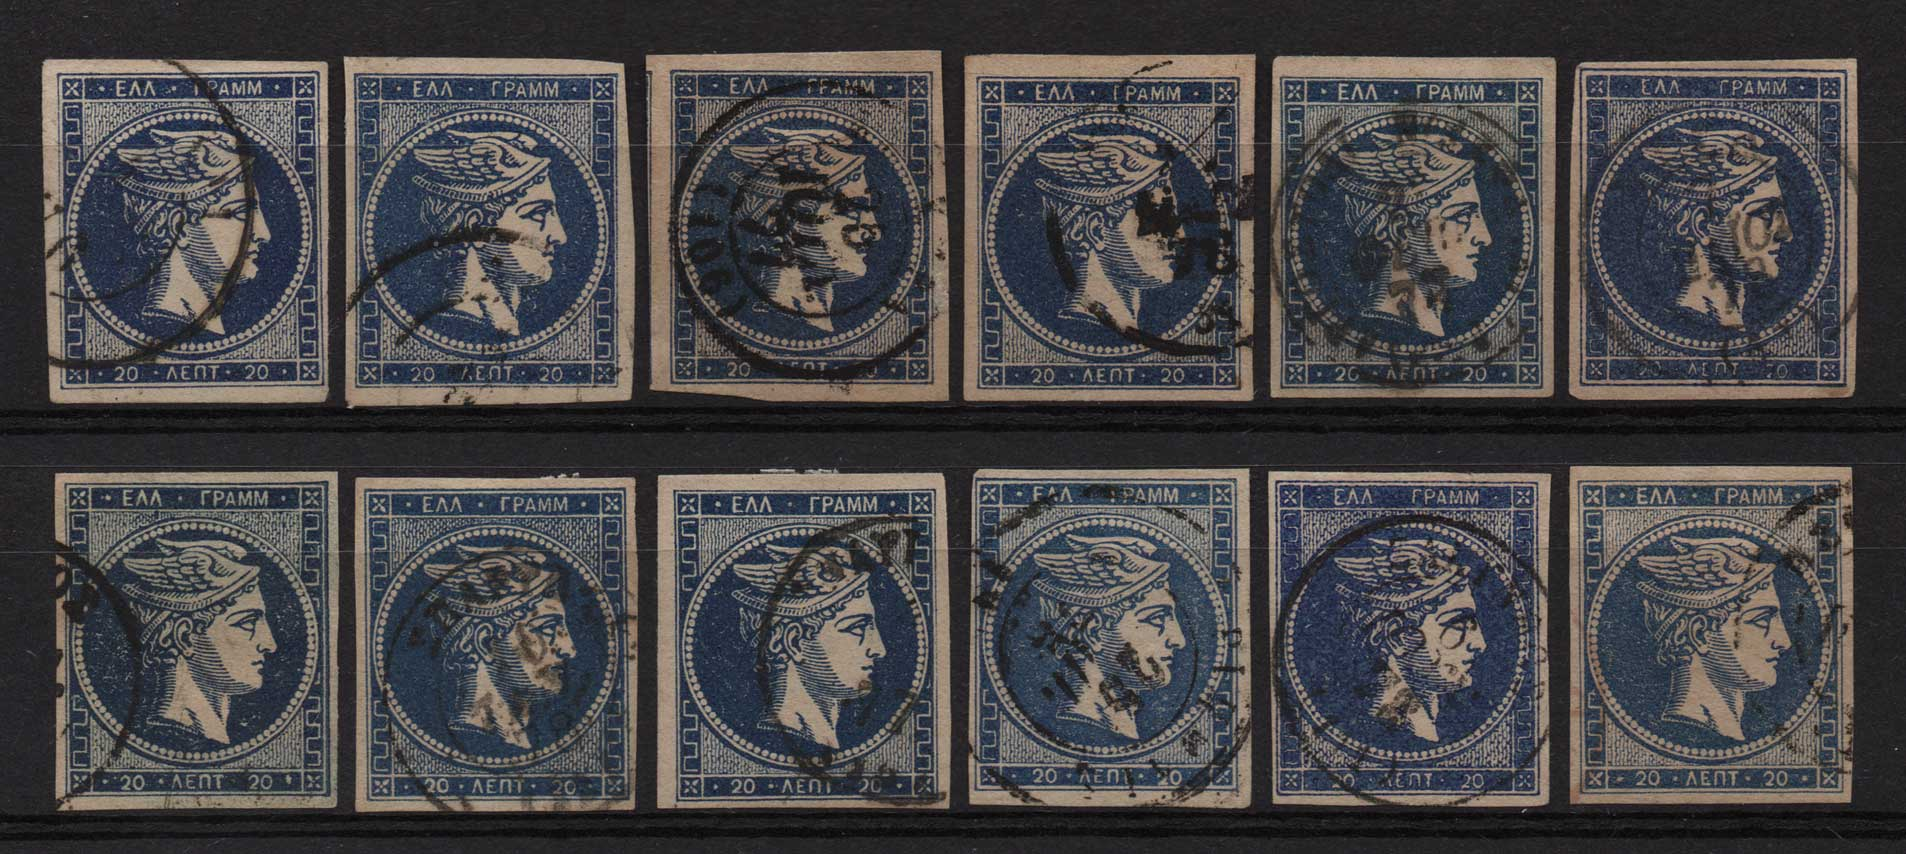 Lot 11 - GREECE-  LARGE HERMES HEAD large hermes head -  Athens Auctions Public Auction 64 General Stamp Sale